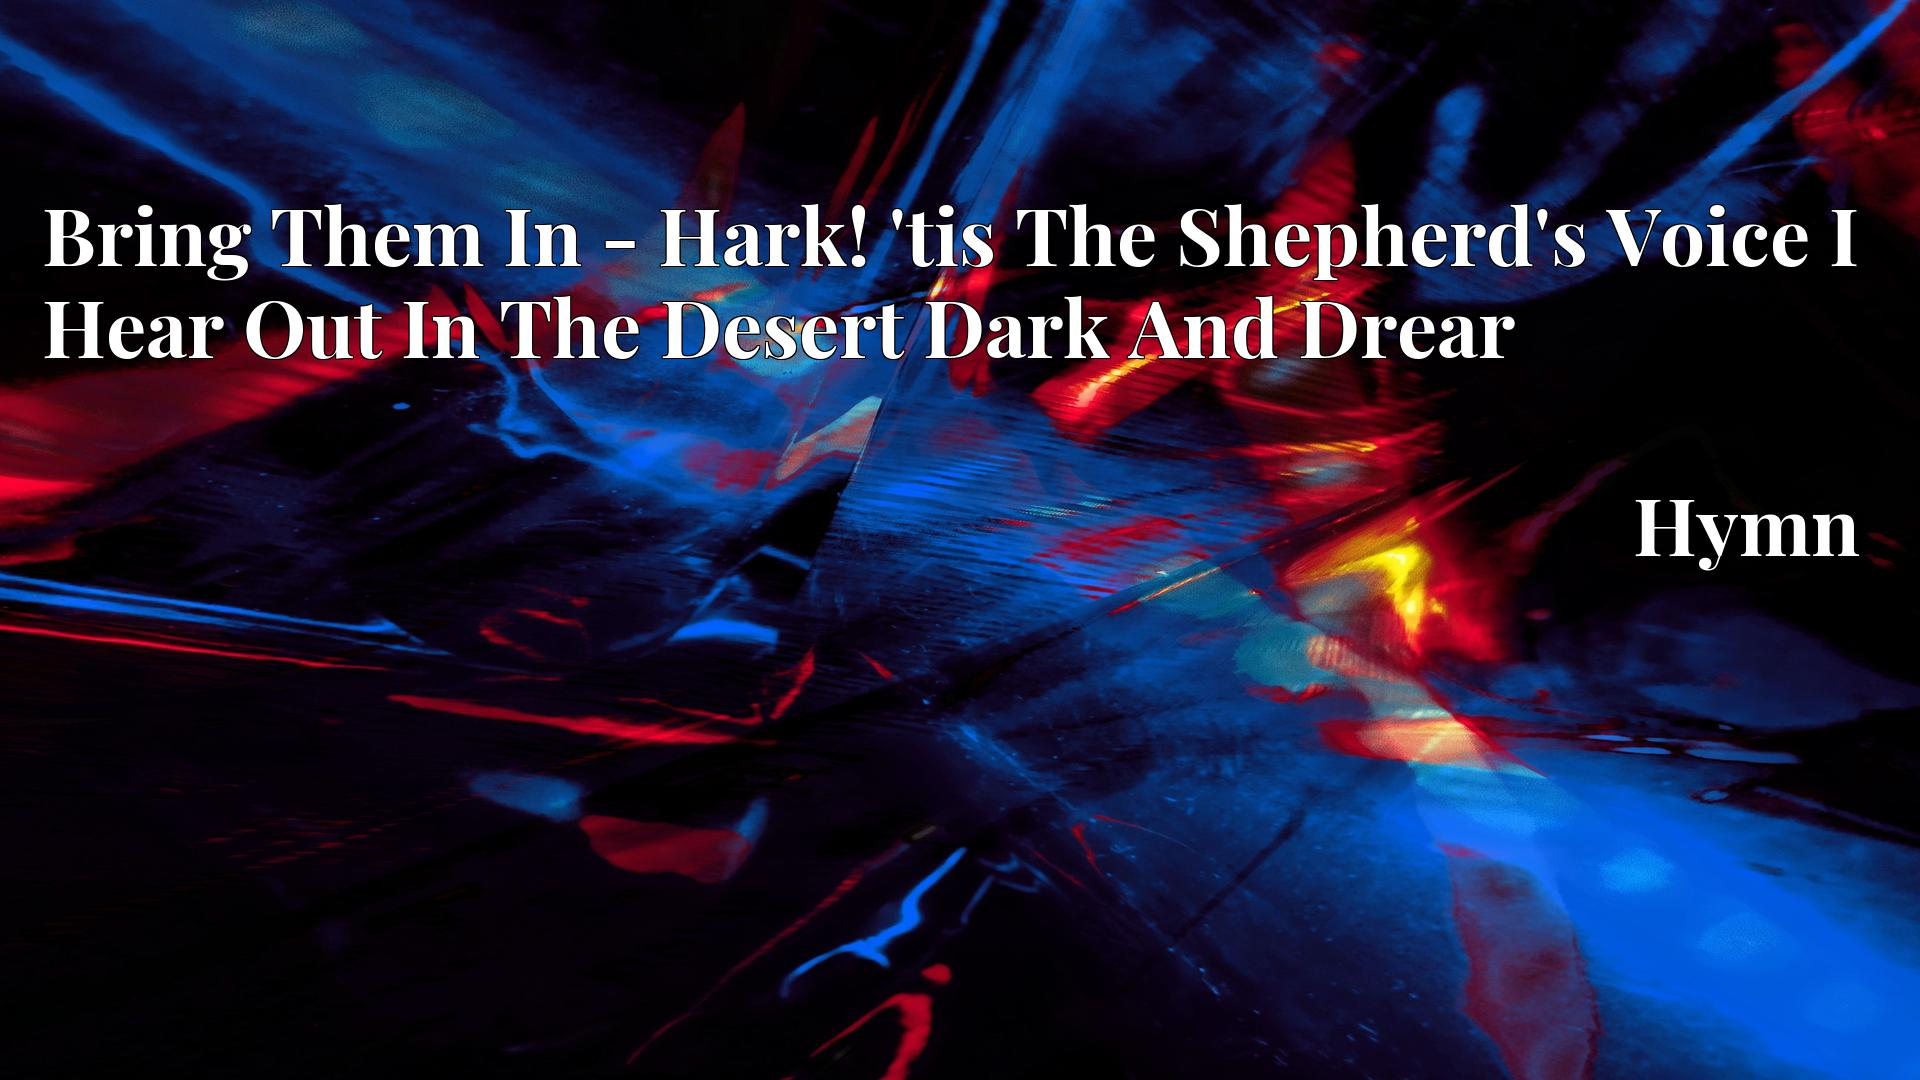 Bring Them In - Hark! 'tis The Shepherd's Voice I Hear Out In The Desert Dark And Drear Hymn